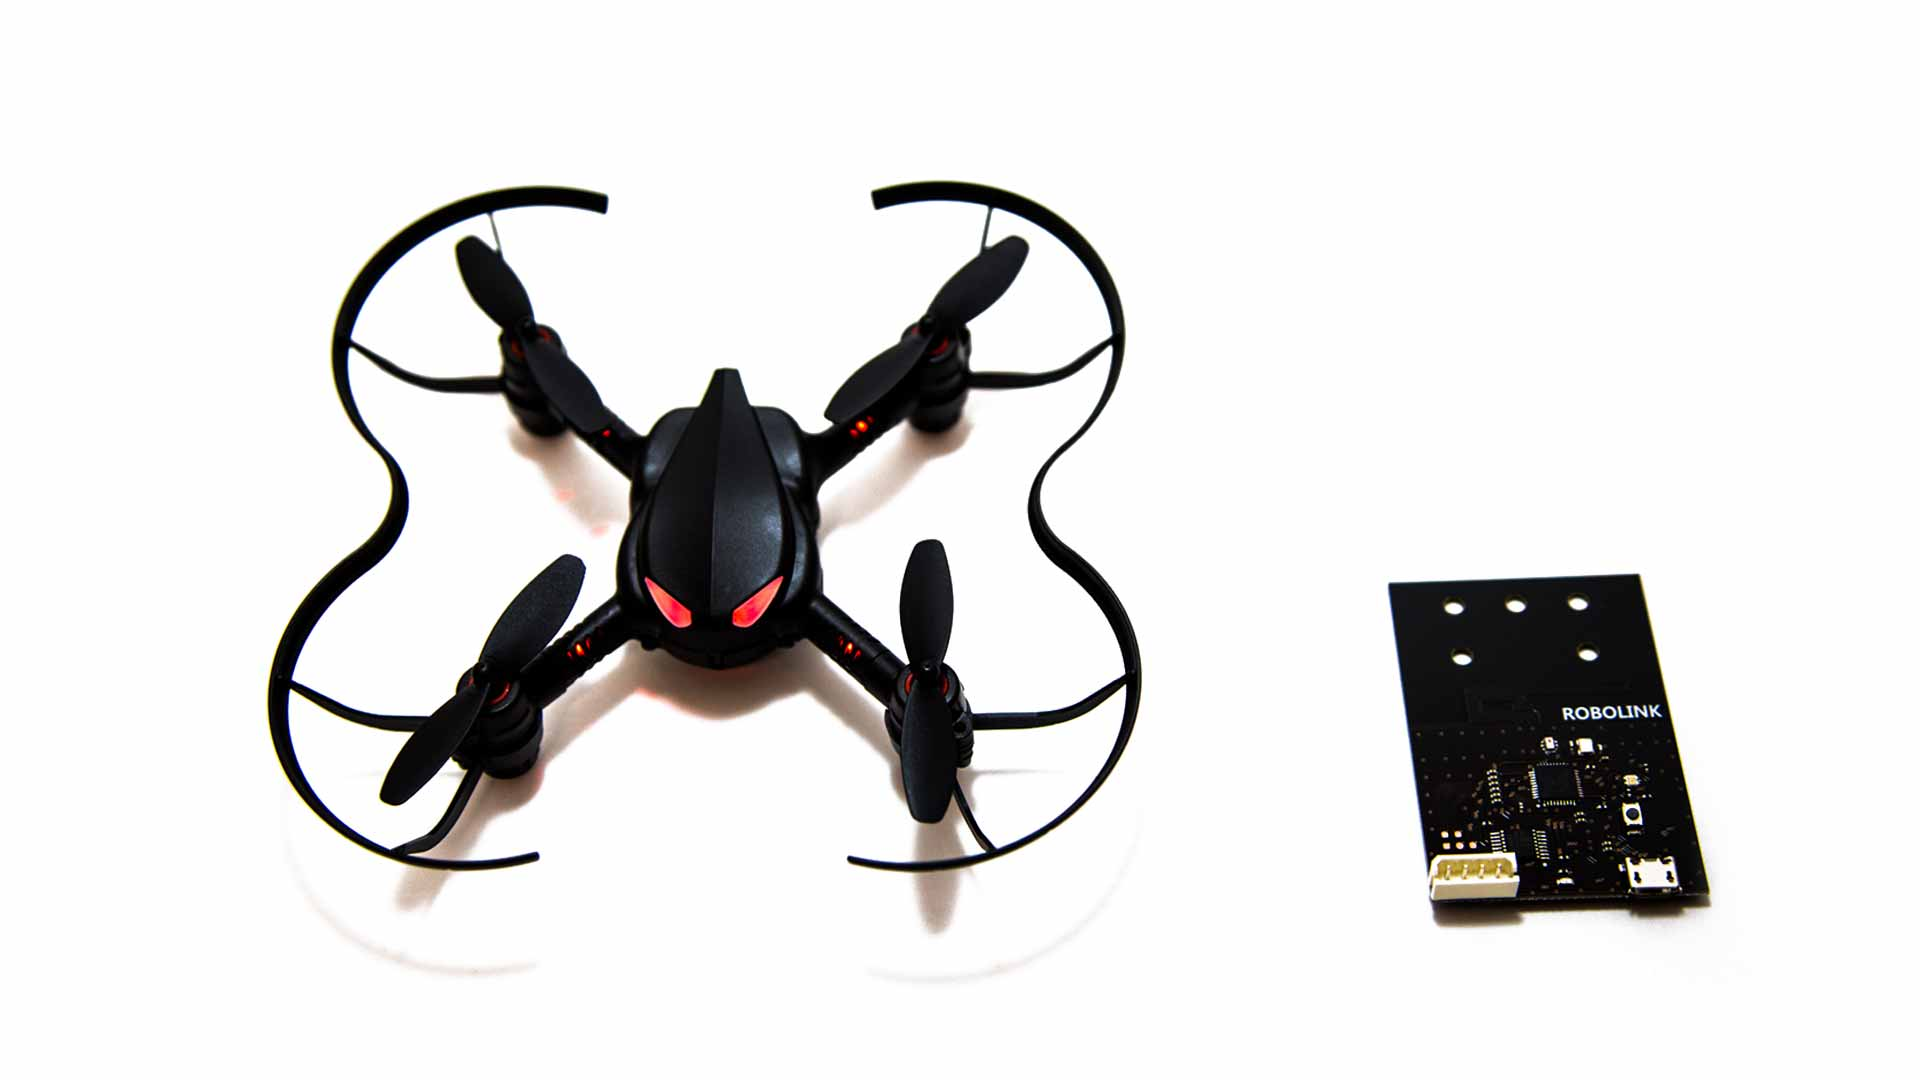 A Drone for Those Who Want a Simple Intro to Programming